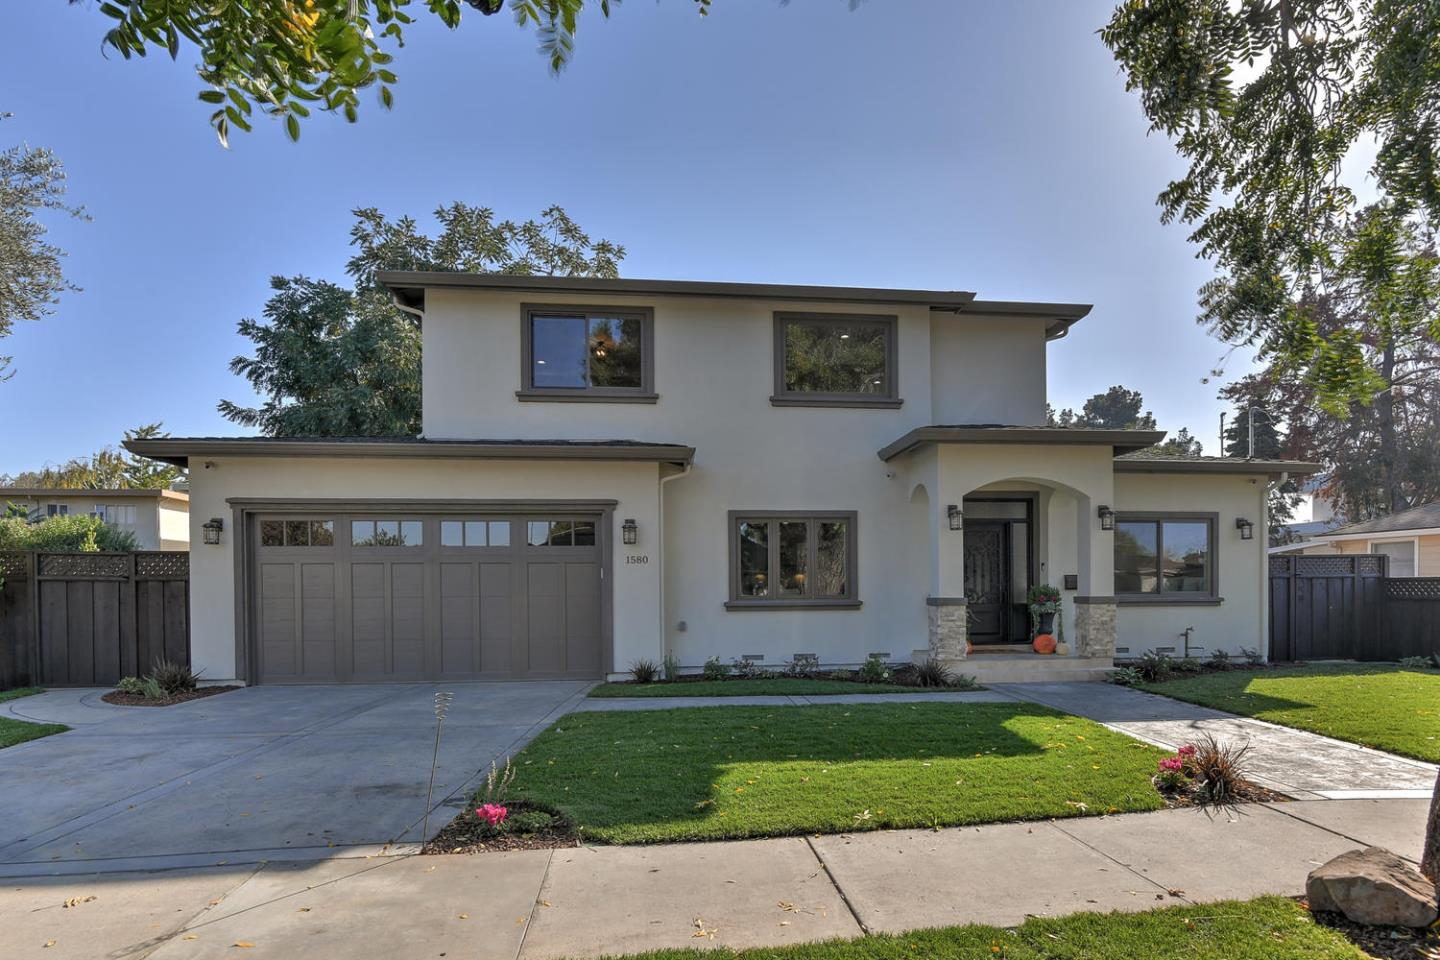 Property for sale at 1580 Willowbrae AVE, San Jose,  California 95125